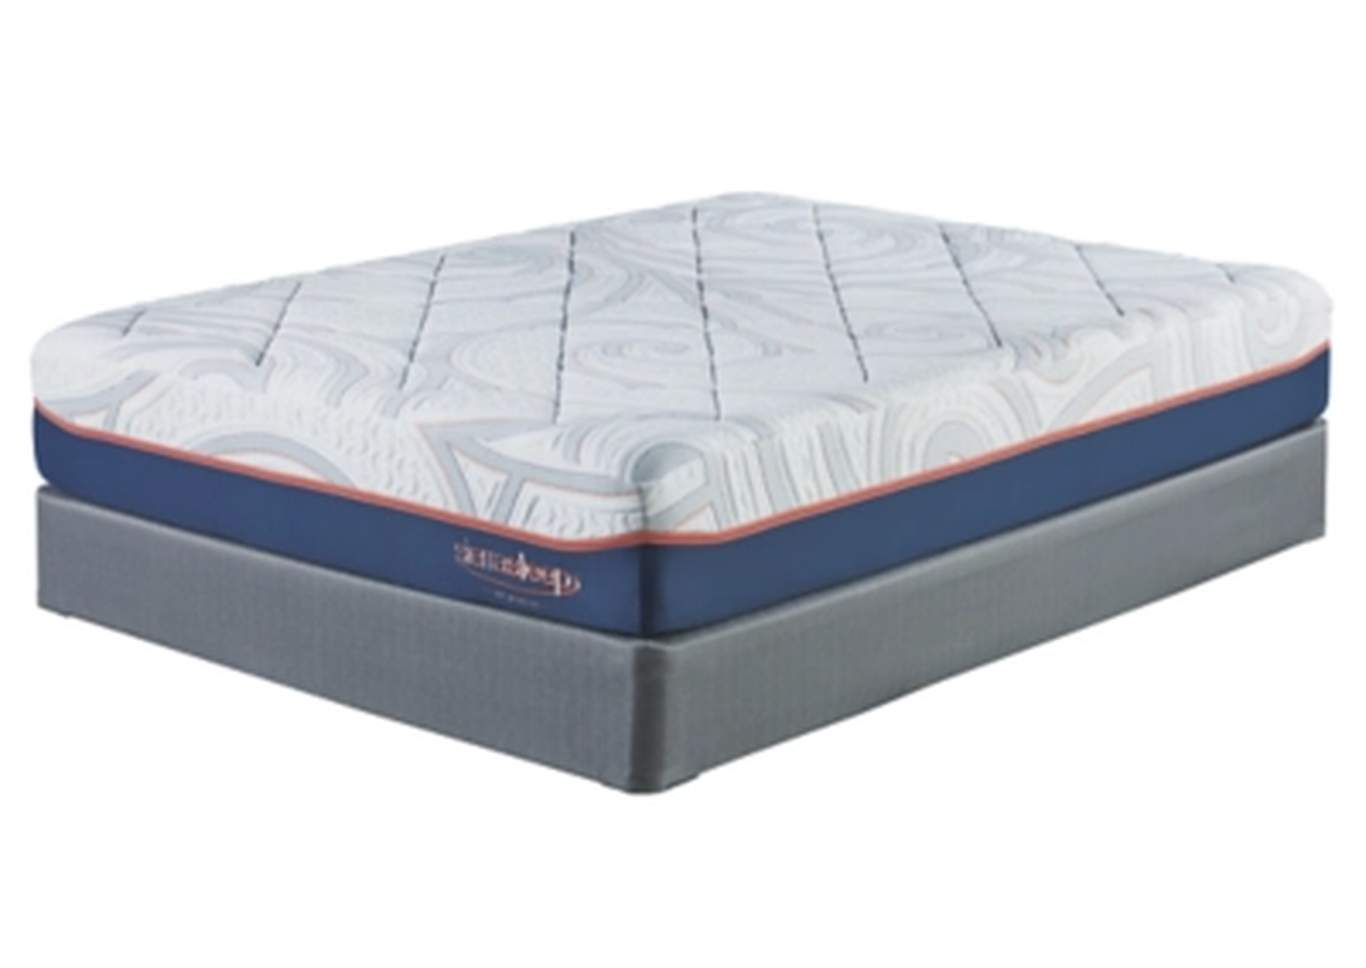 12 Inch MyGel Queen Mattress,Sierra Sleep by Ashley